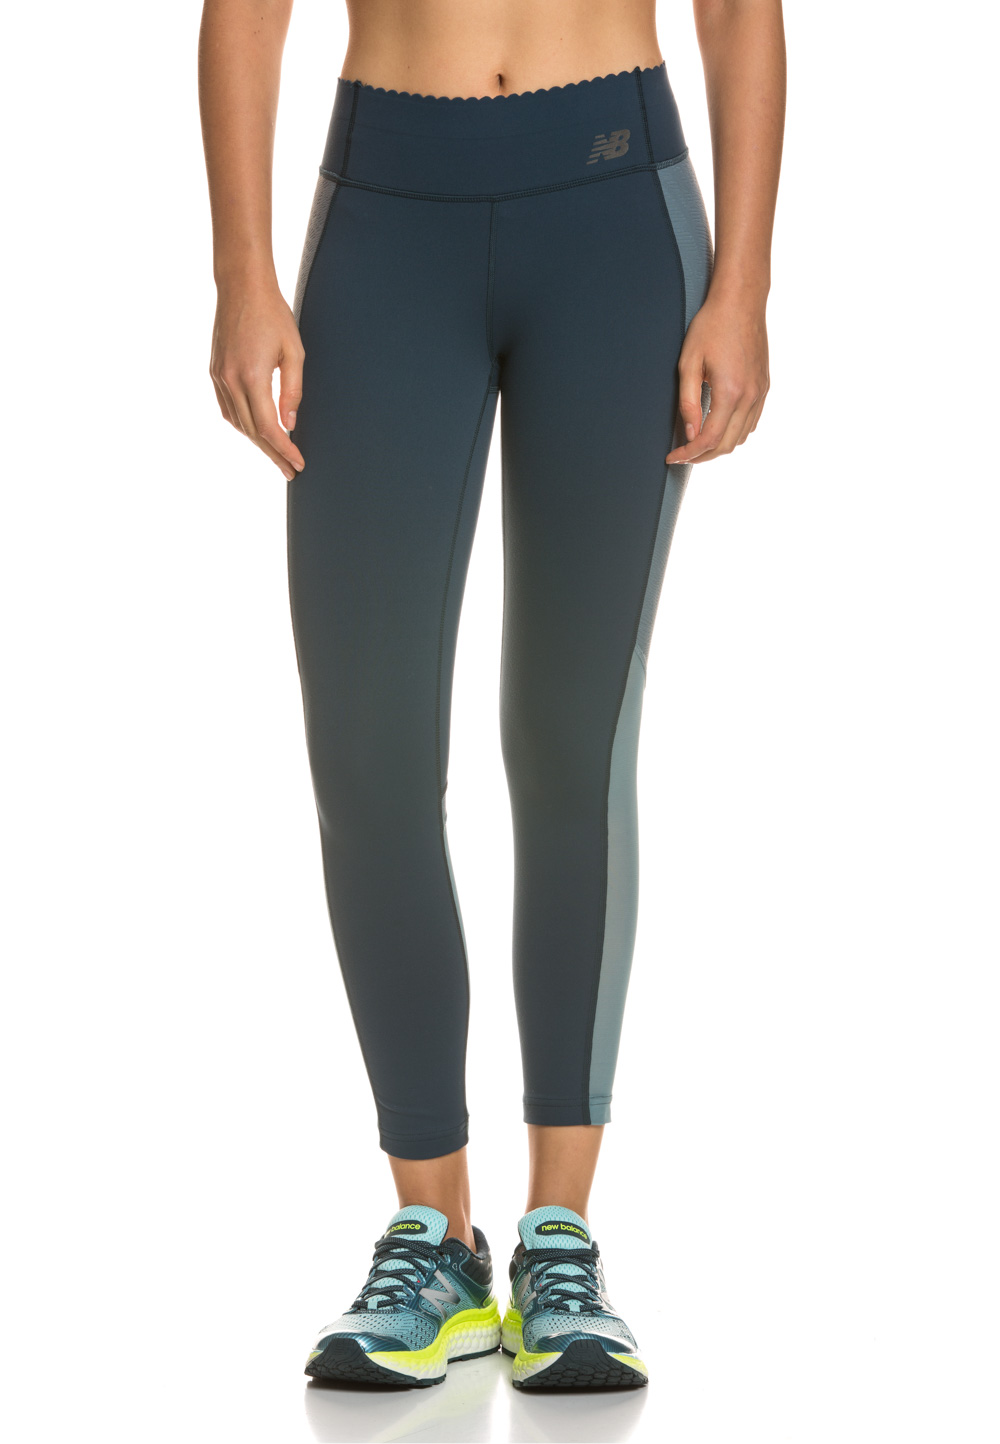 NEW Balance Tights, 7/8-Länge blau | Sportbekleidung > Sporthosen > Tights | Blau | New Balance